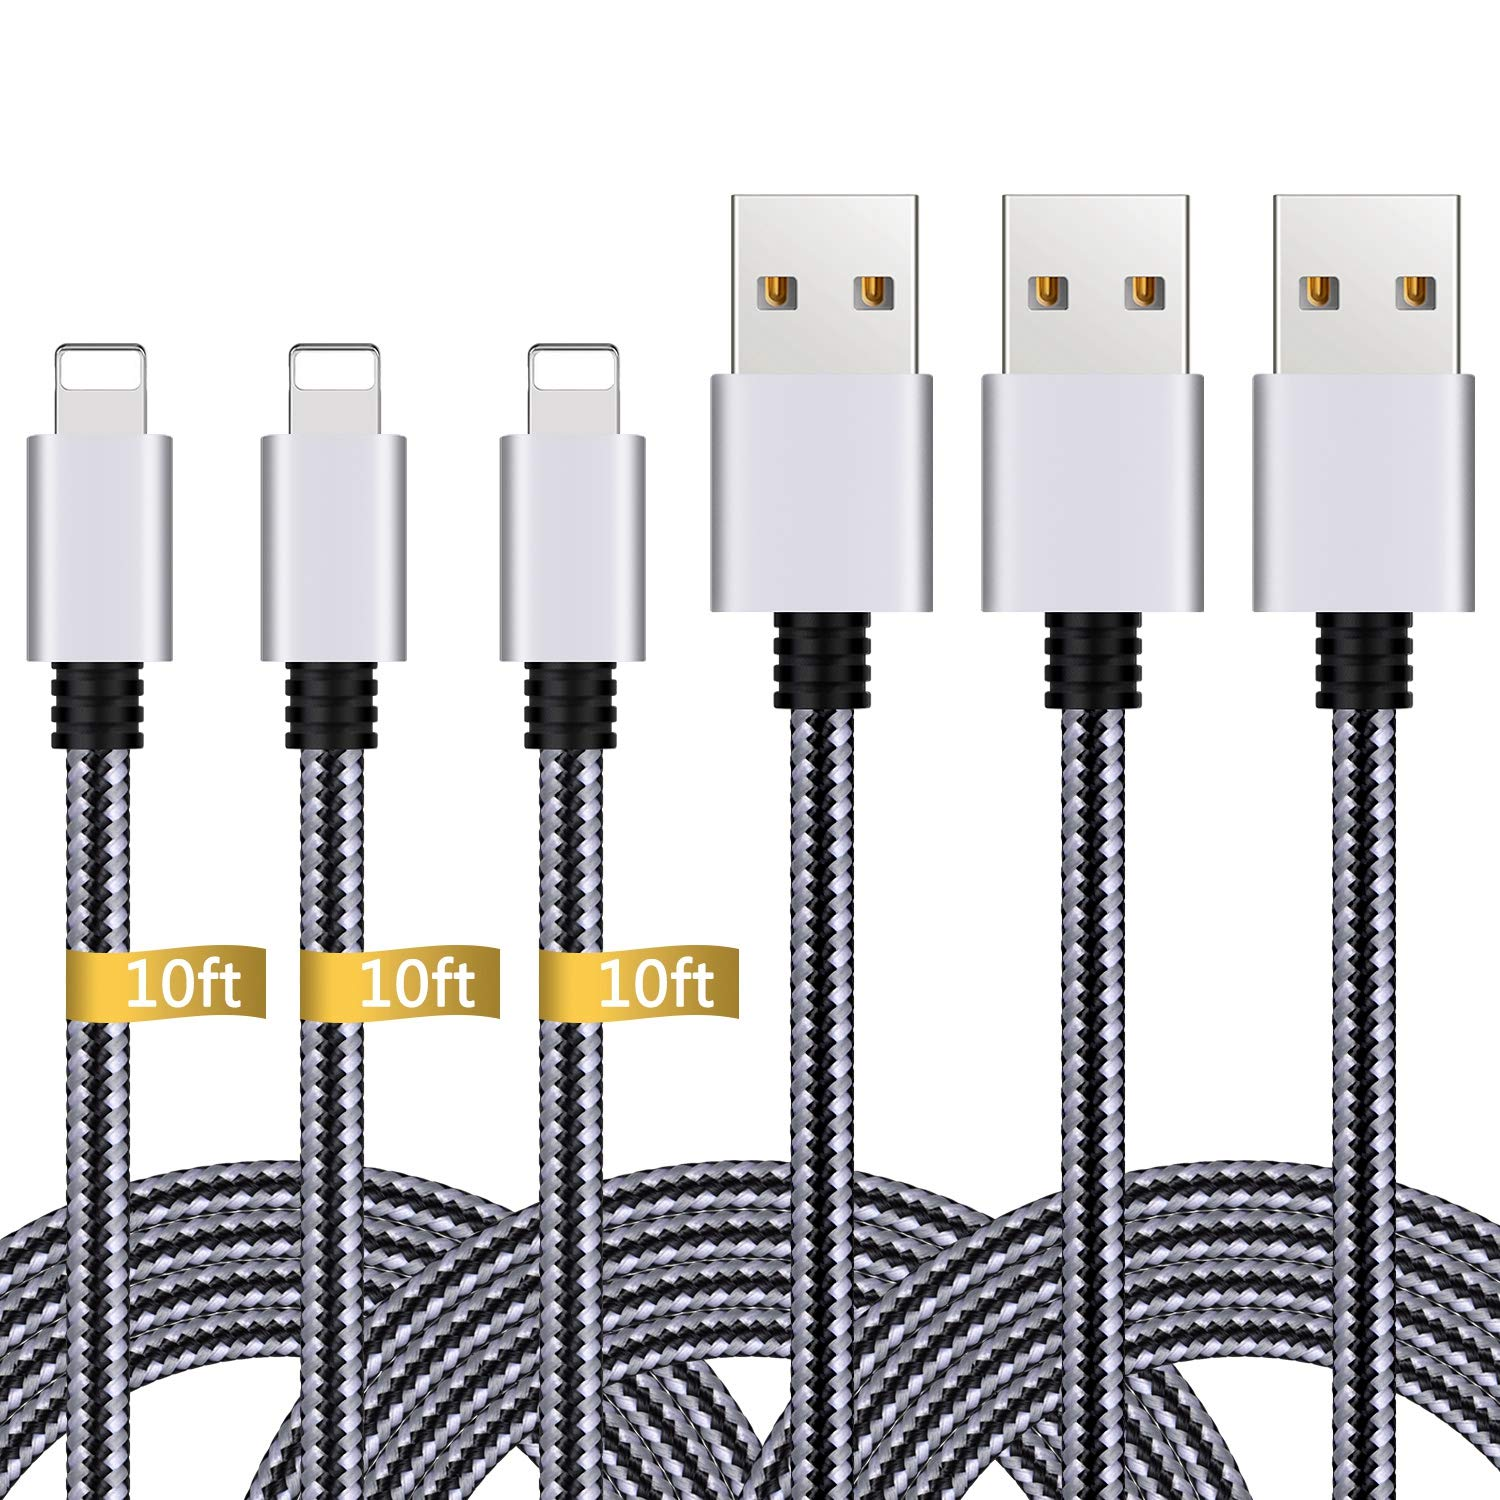 iPhone Charger,3Pack 10FT Lightning to USB Cable Nylon Braided Charging Cord Compatible with iPhone X 8 Plus 8 7 Plus 7 6 6S 6 Plus 5S SE iPod iPad ...